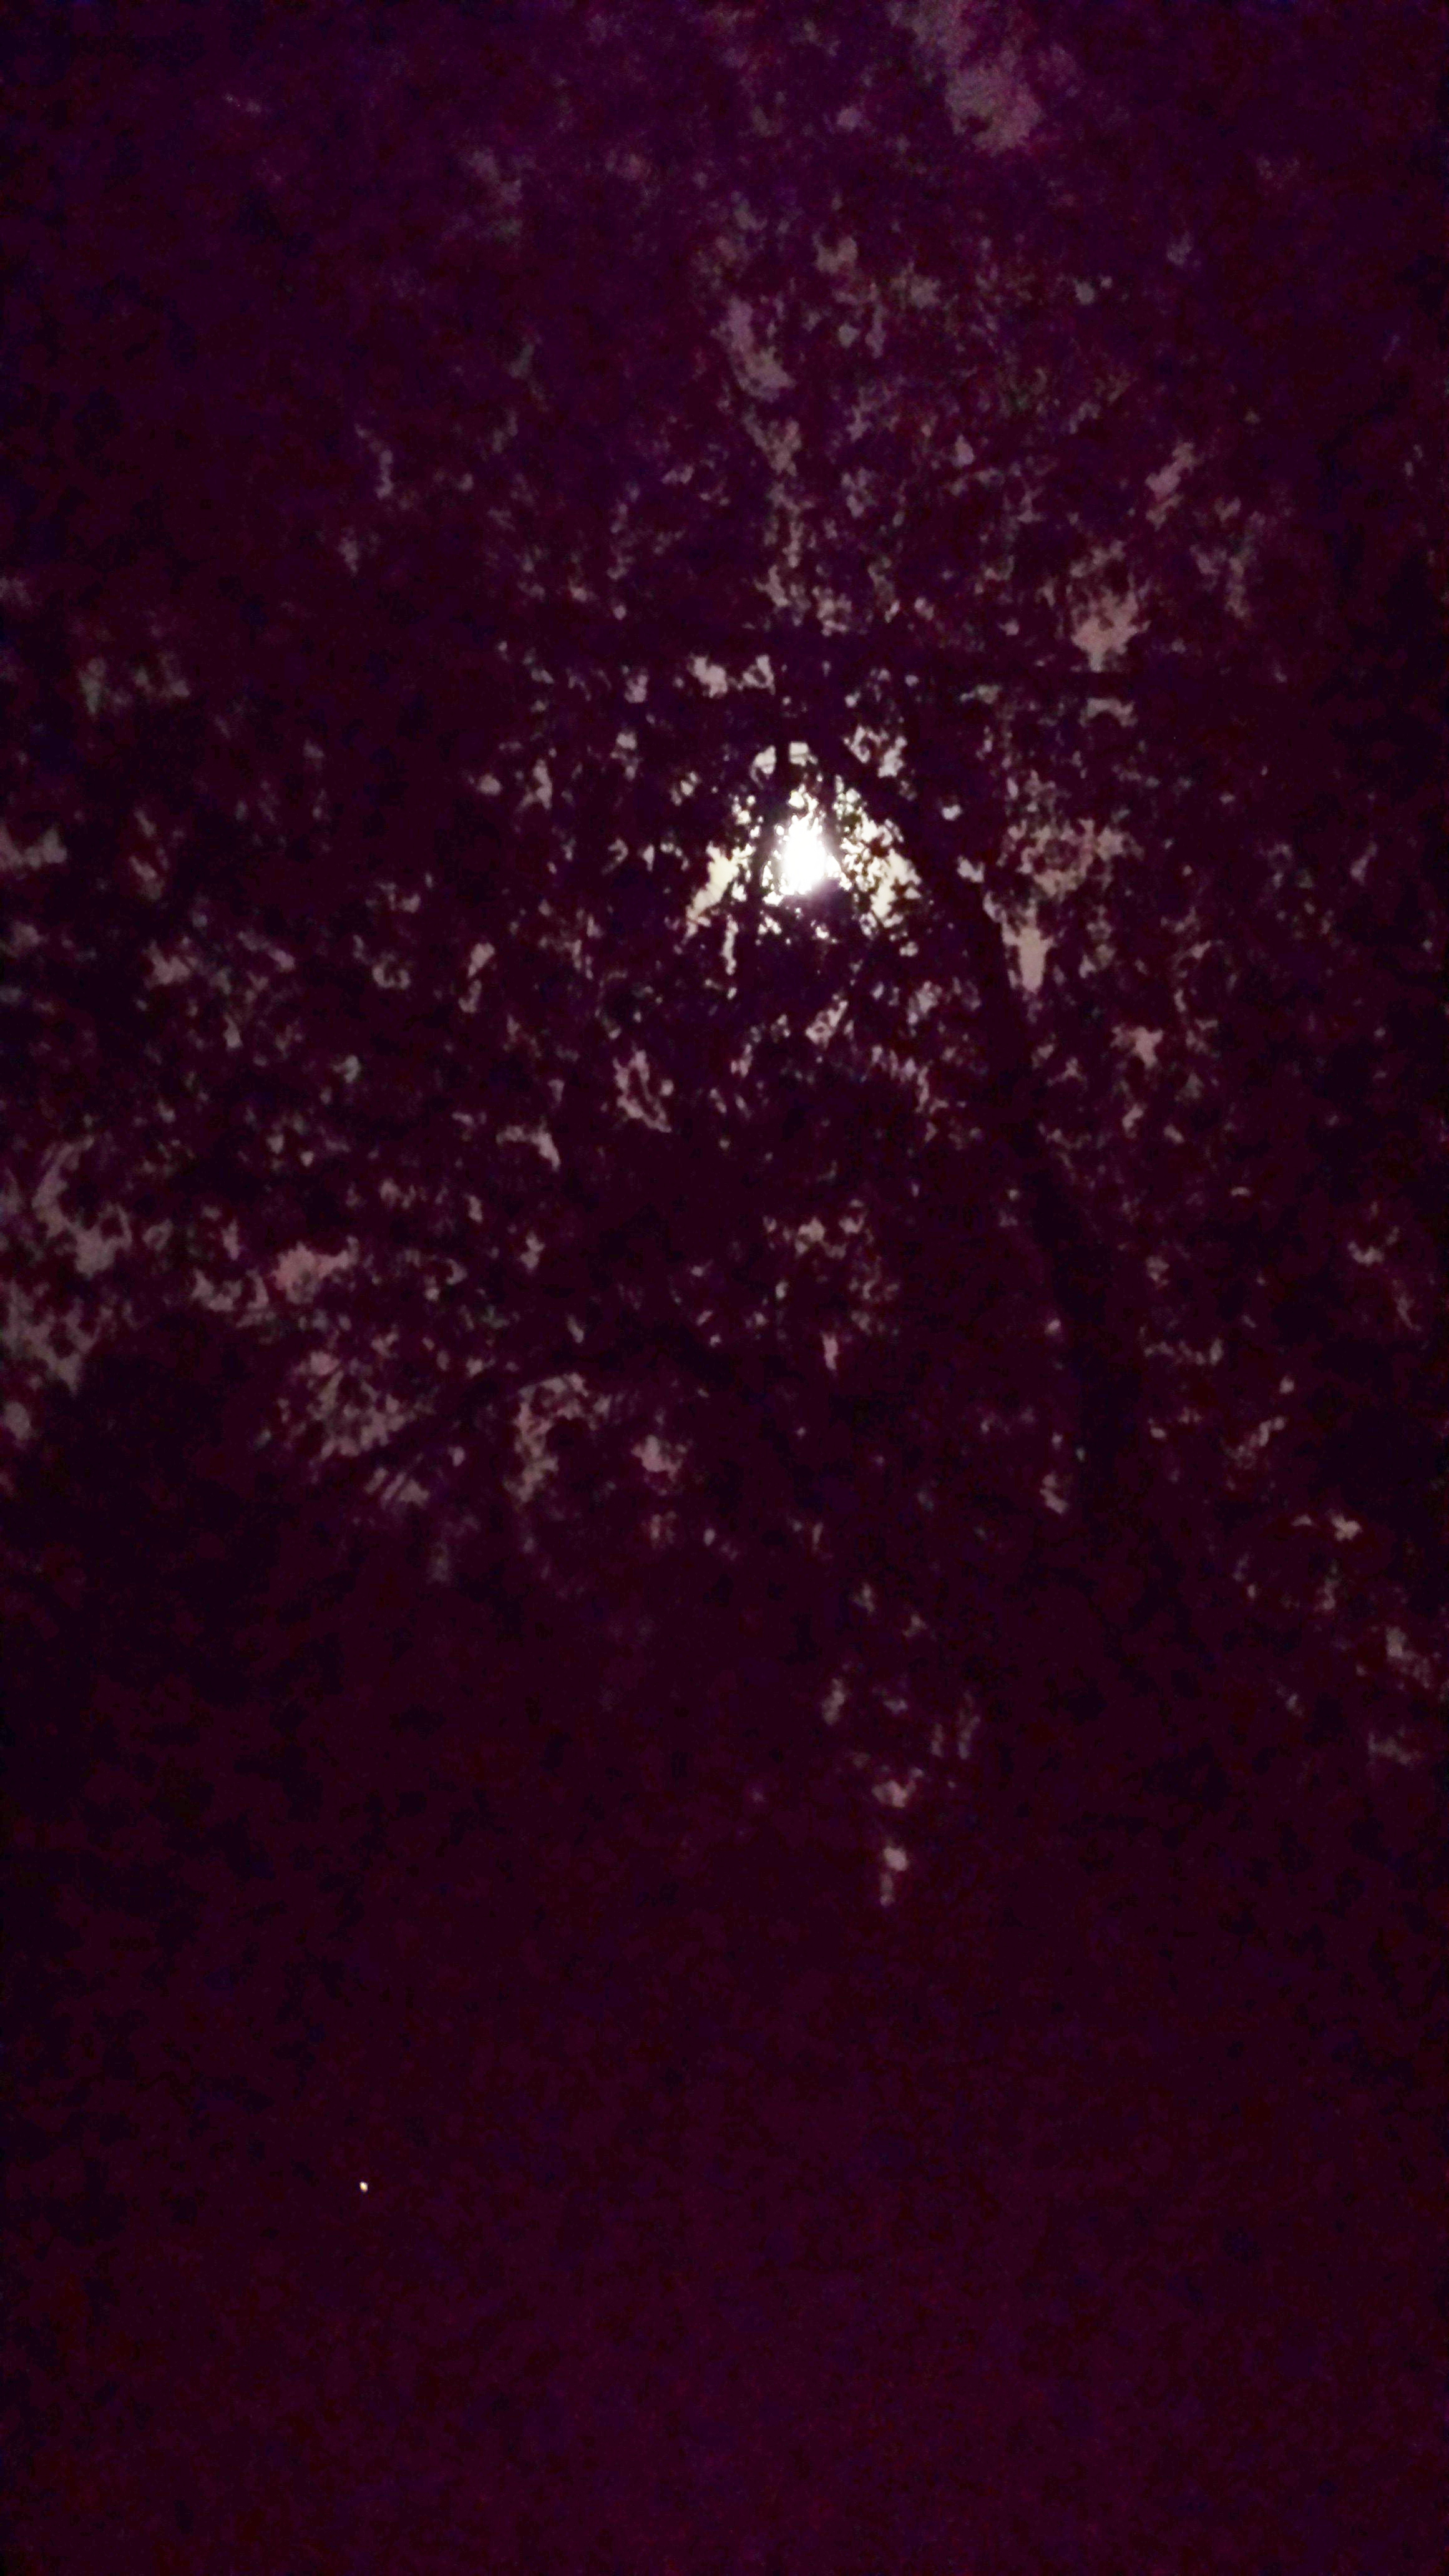 Full moon filters through the canopy of leaves above our deck.